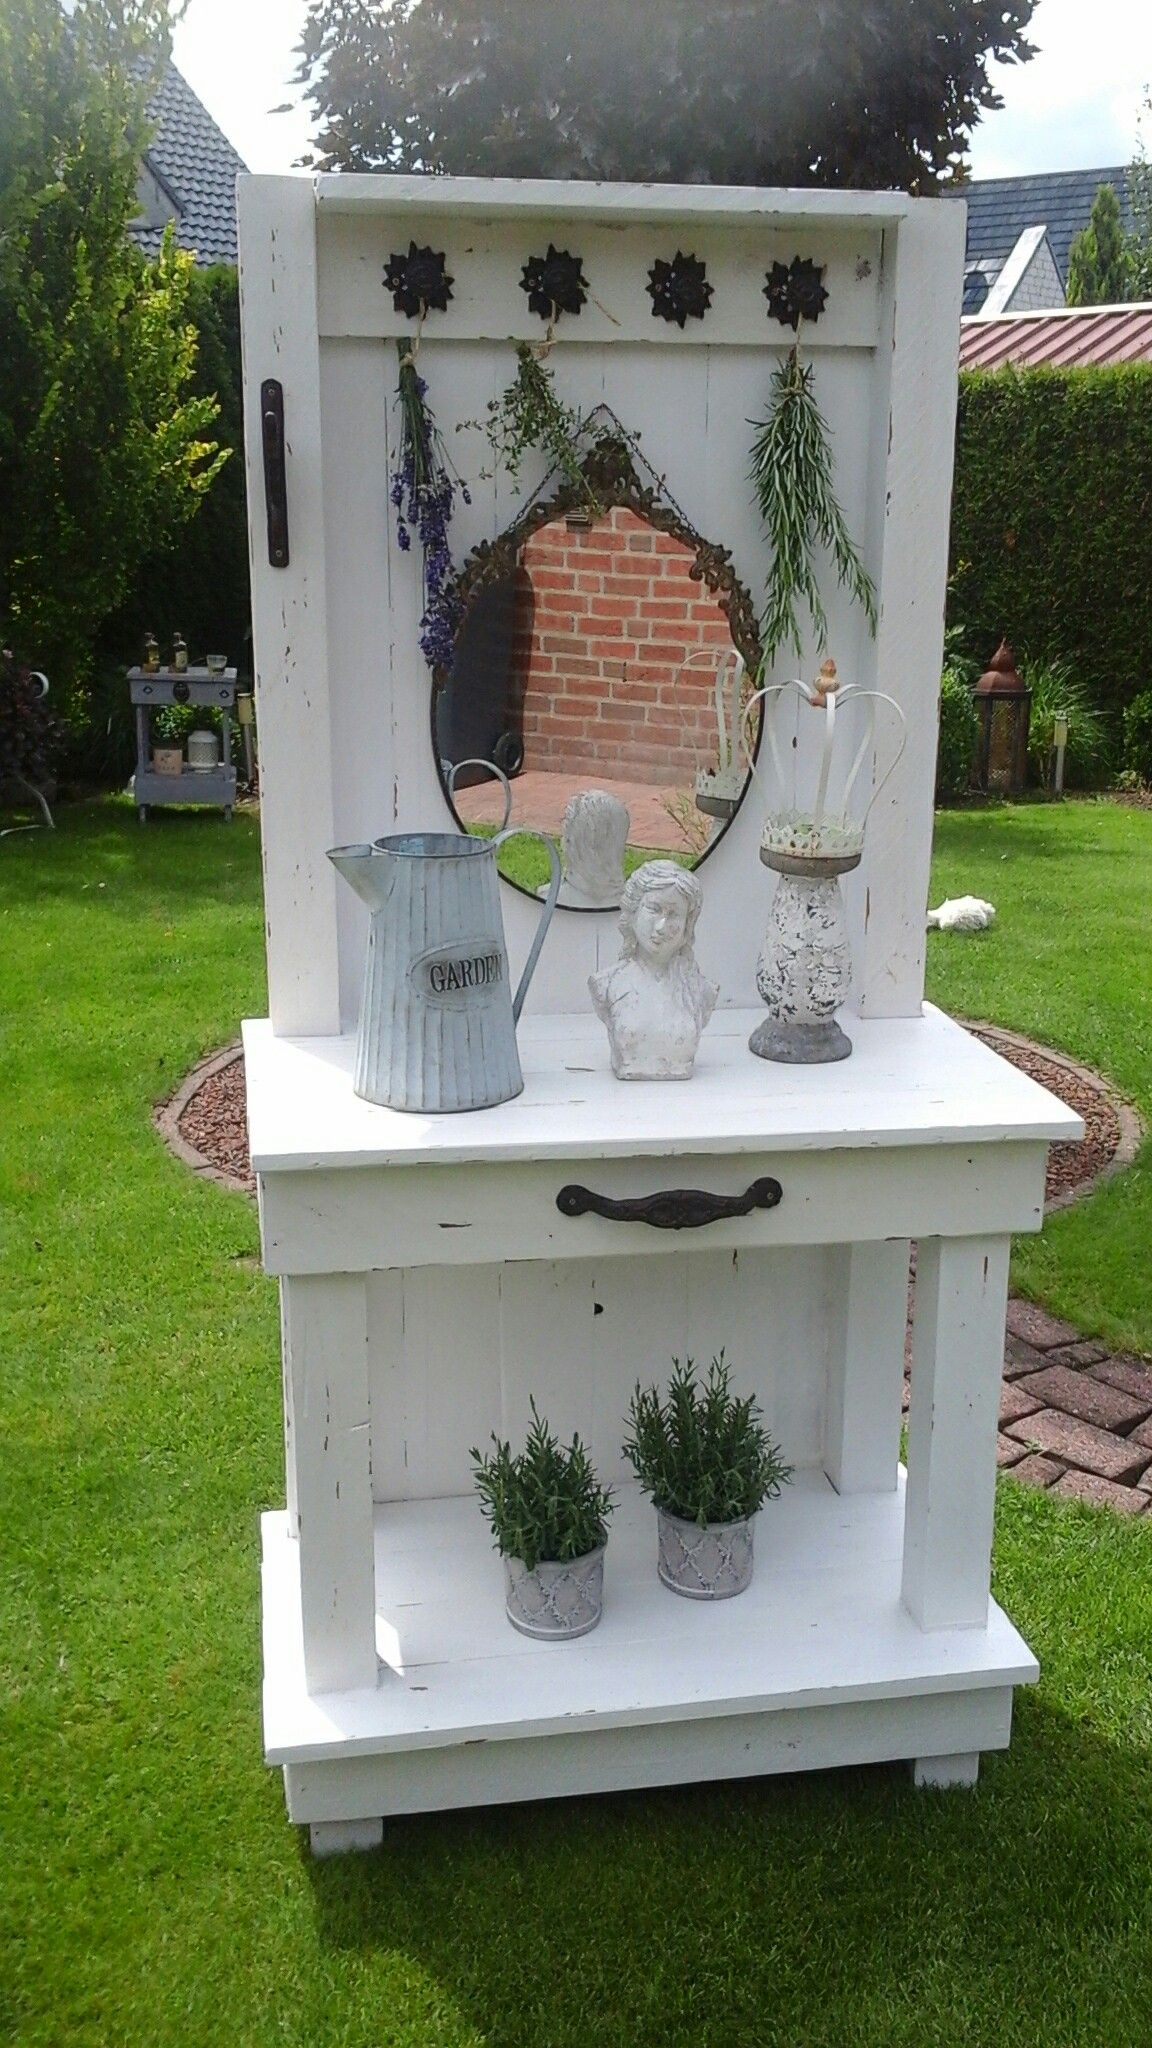 pflanztisch paletten garten shabby chic pappbecher. Black Bedroom Furniture Sets. Home Design Ideas